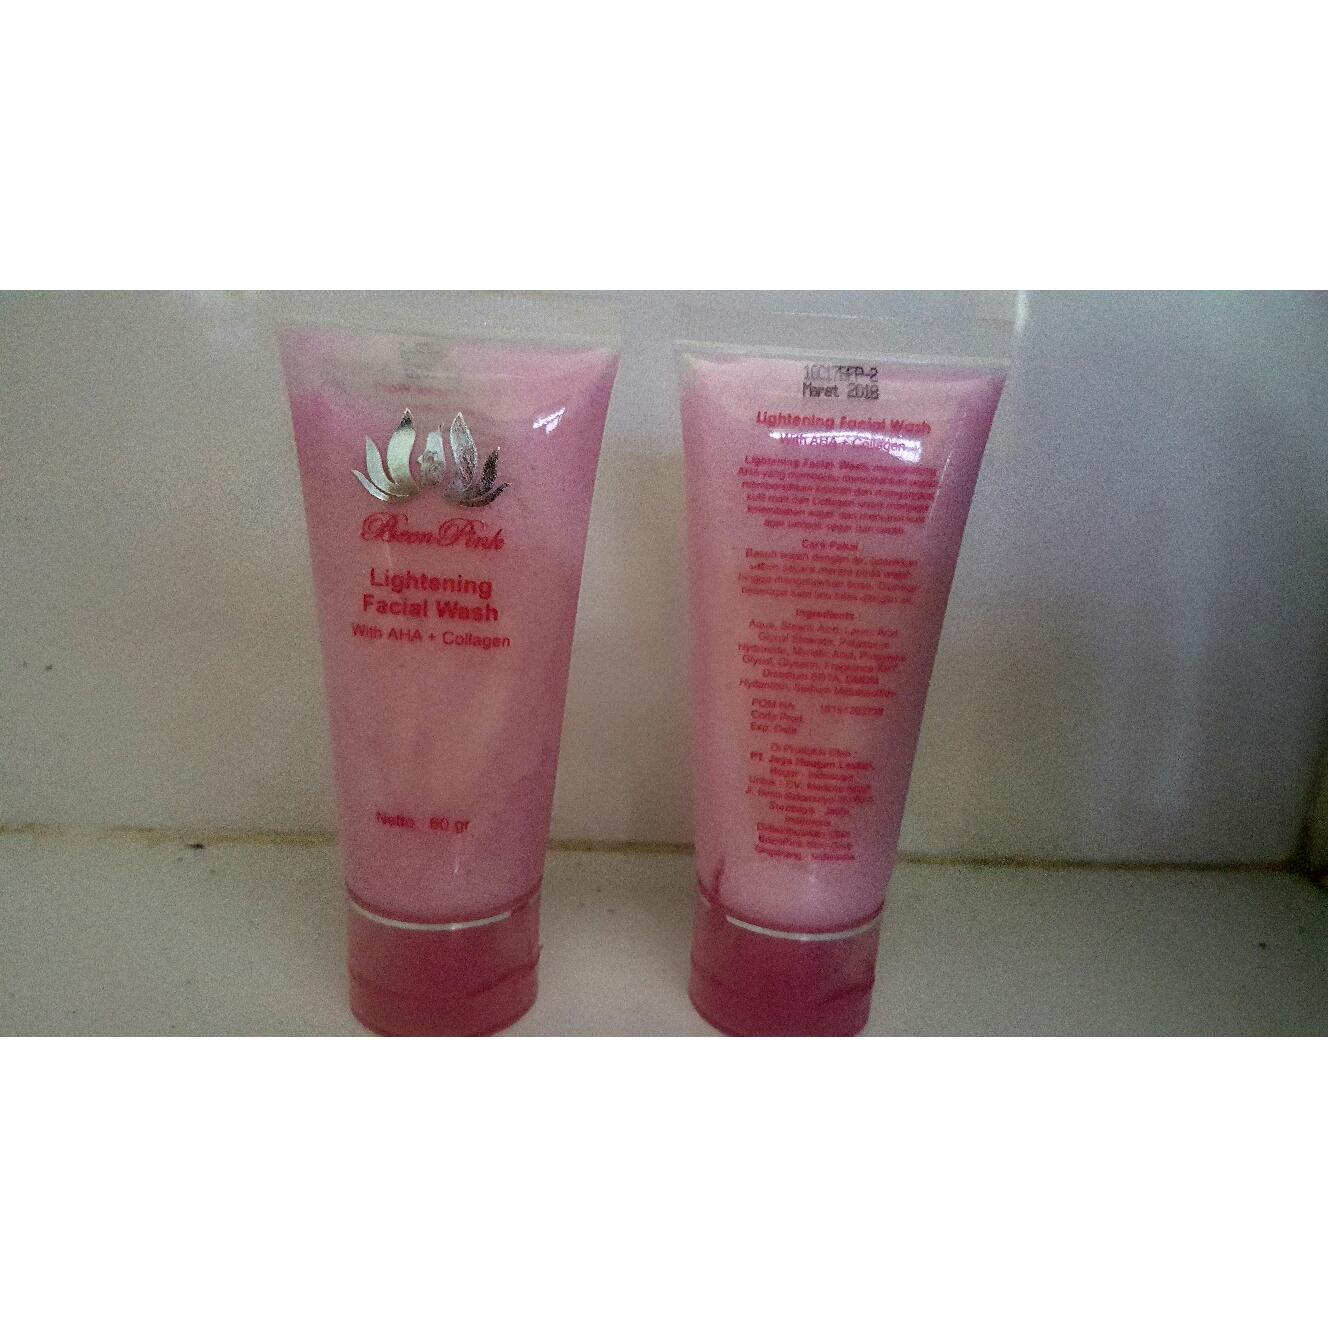 Facial Wash Been Pink Sabun Wajah Beenpink Elevenia Otoys Track Train Cartoon Mainan Kereta Api Pa 8670